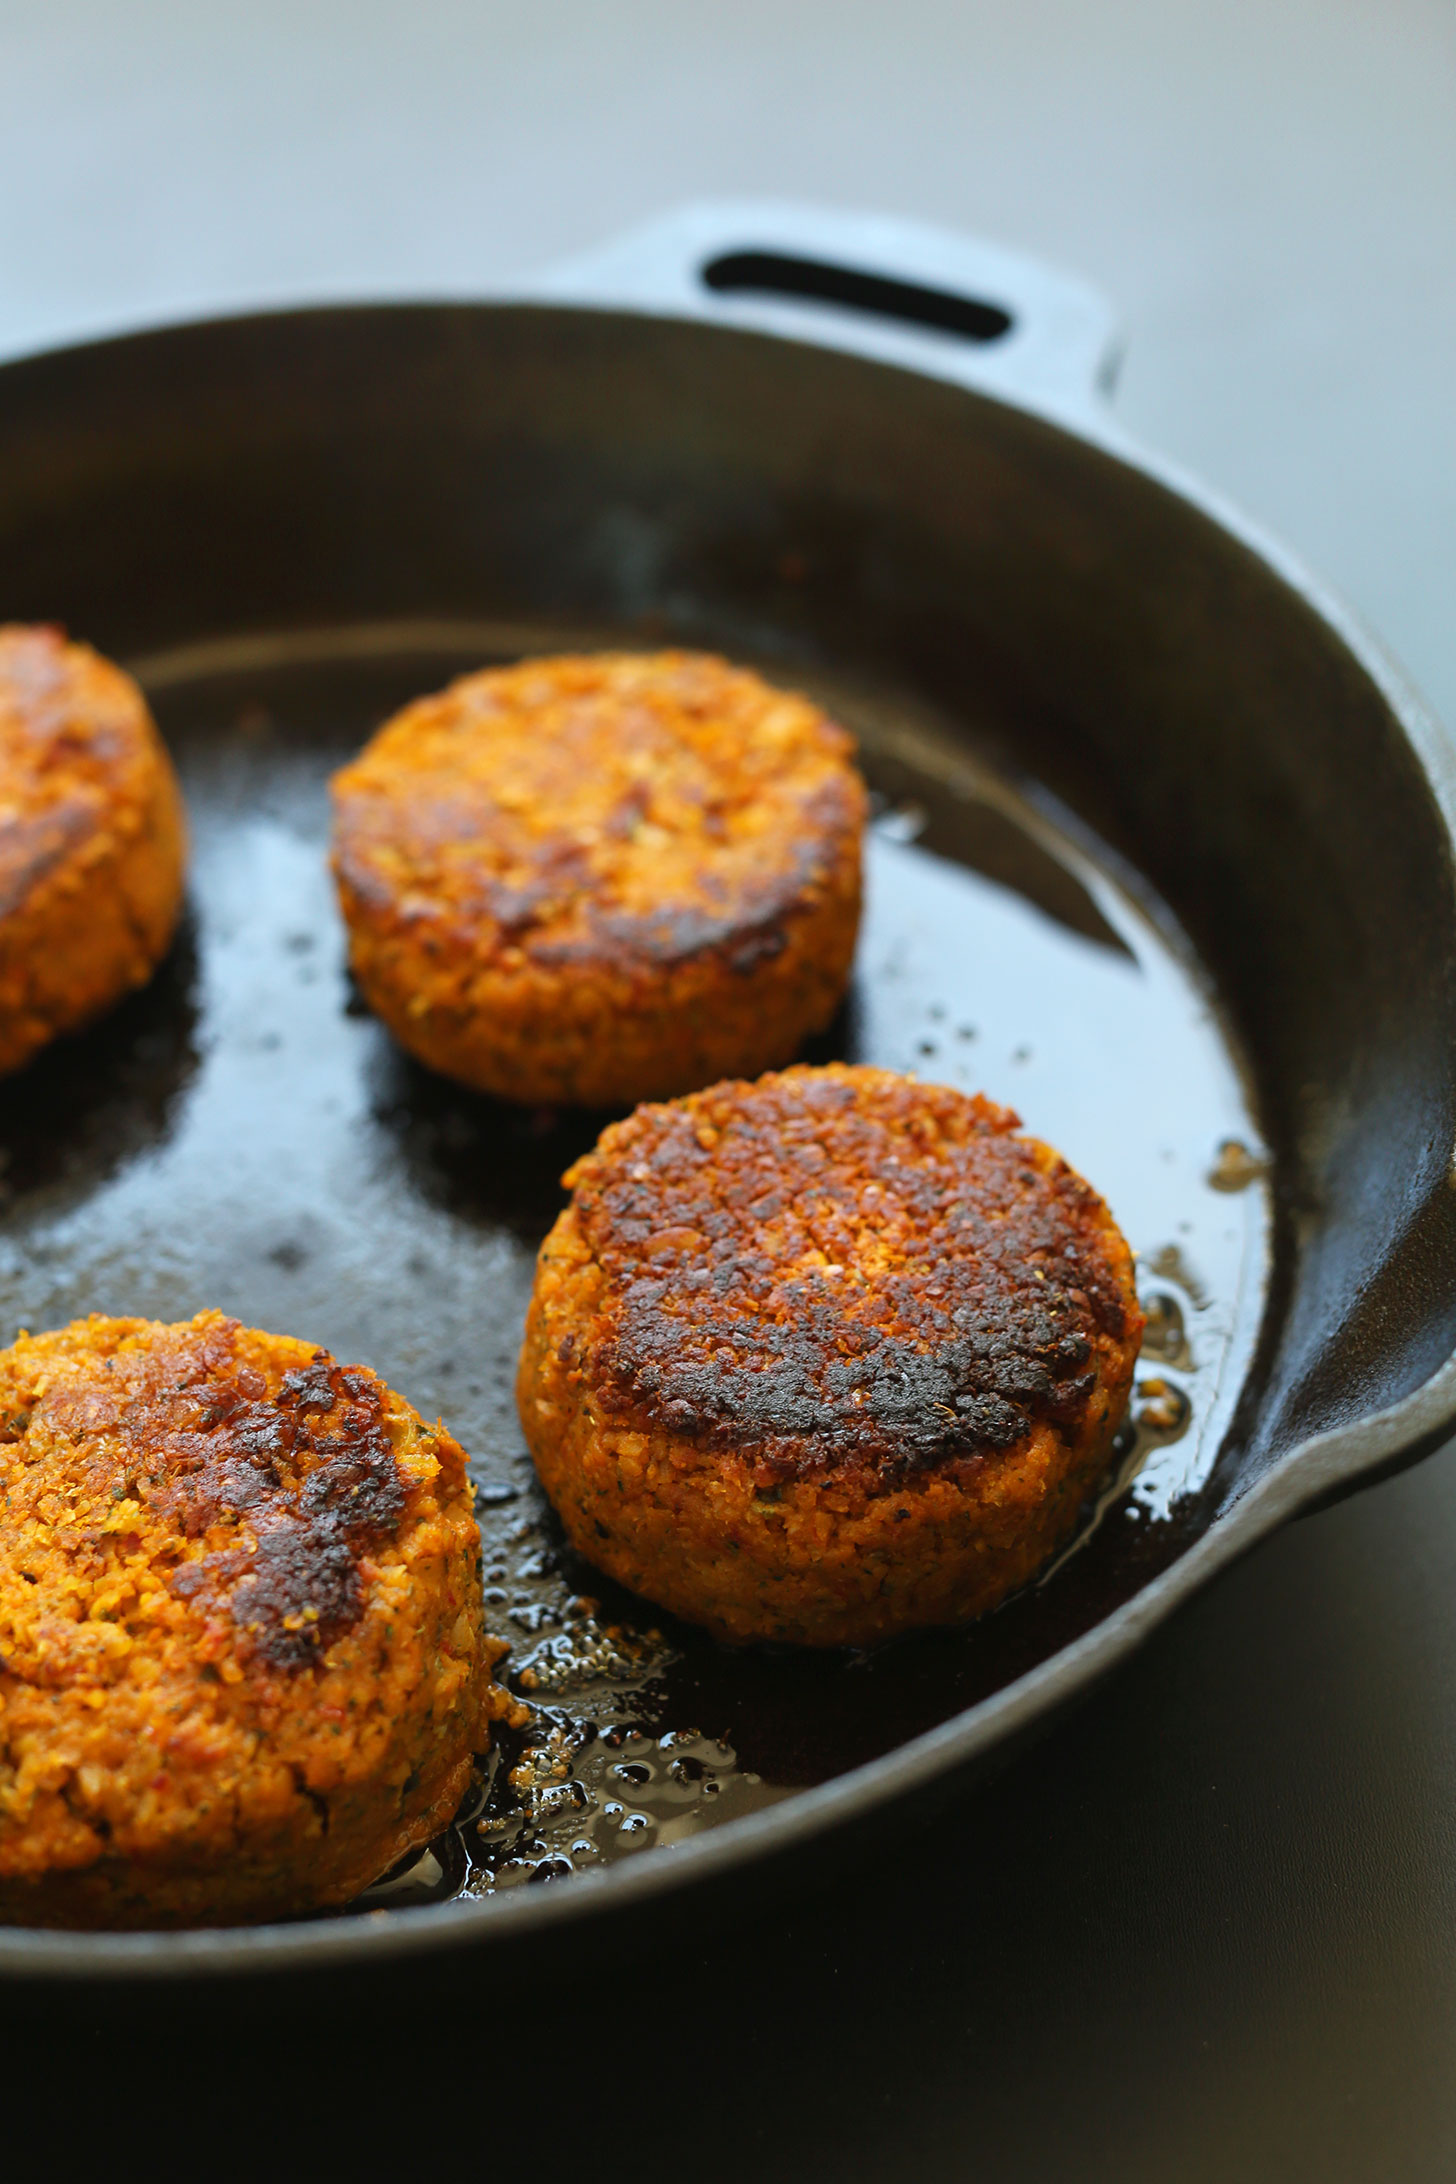 Cooking gluten-free vegan chickpea burgers in a cast-iron skillet